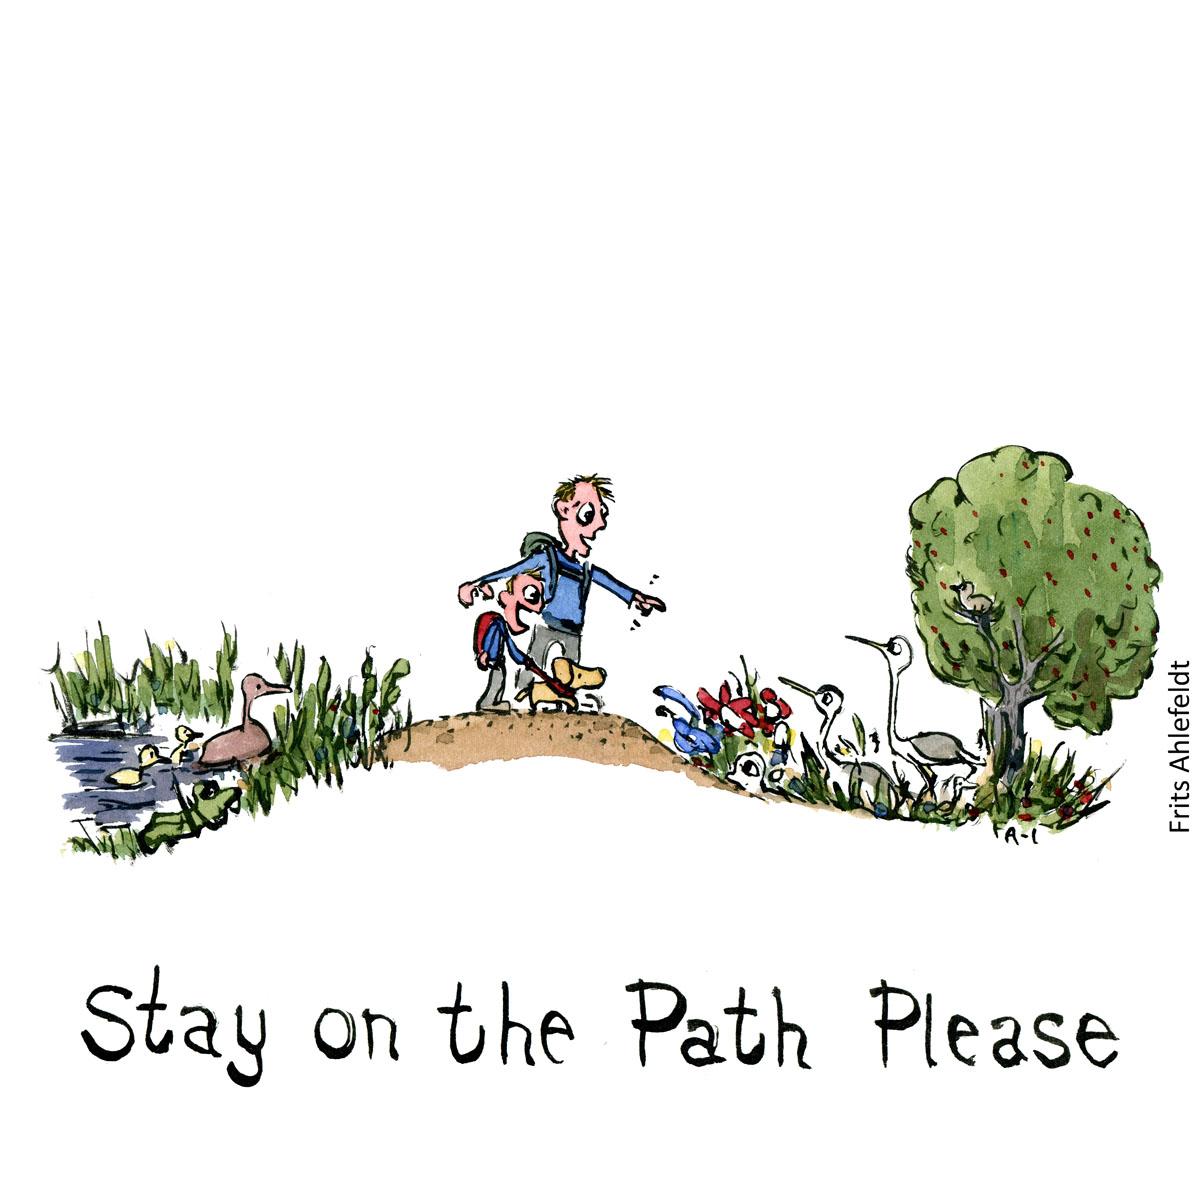 Drawing of two hikers, man and boy on path. with nature around them. Illustration handmade by Frits Ahlefeldt